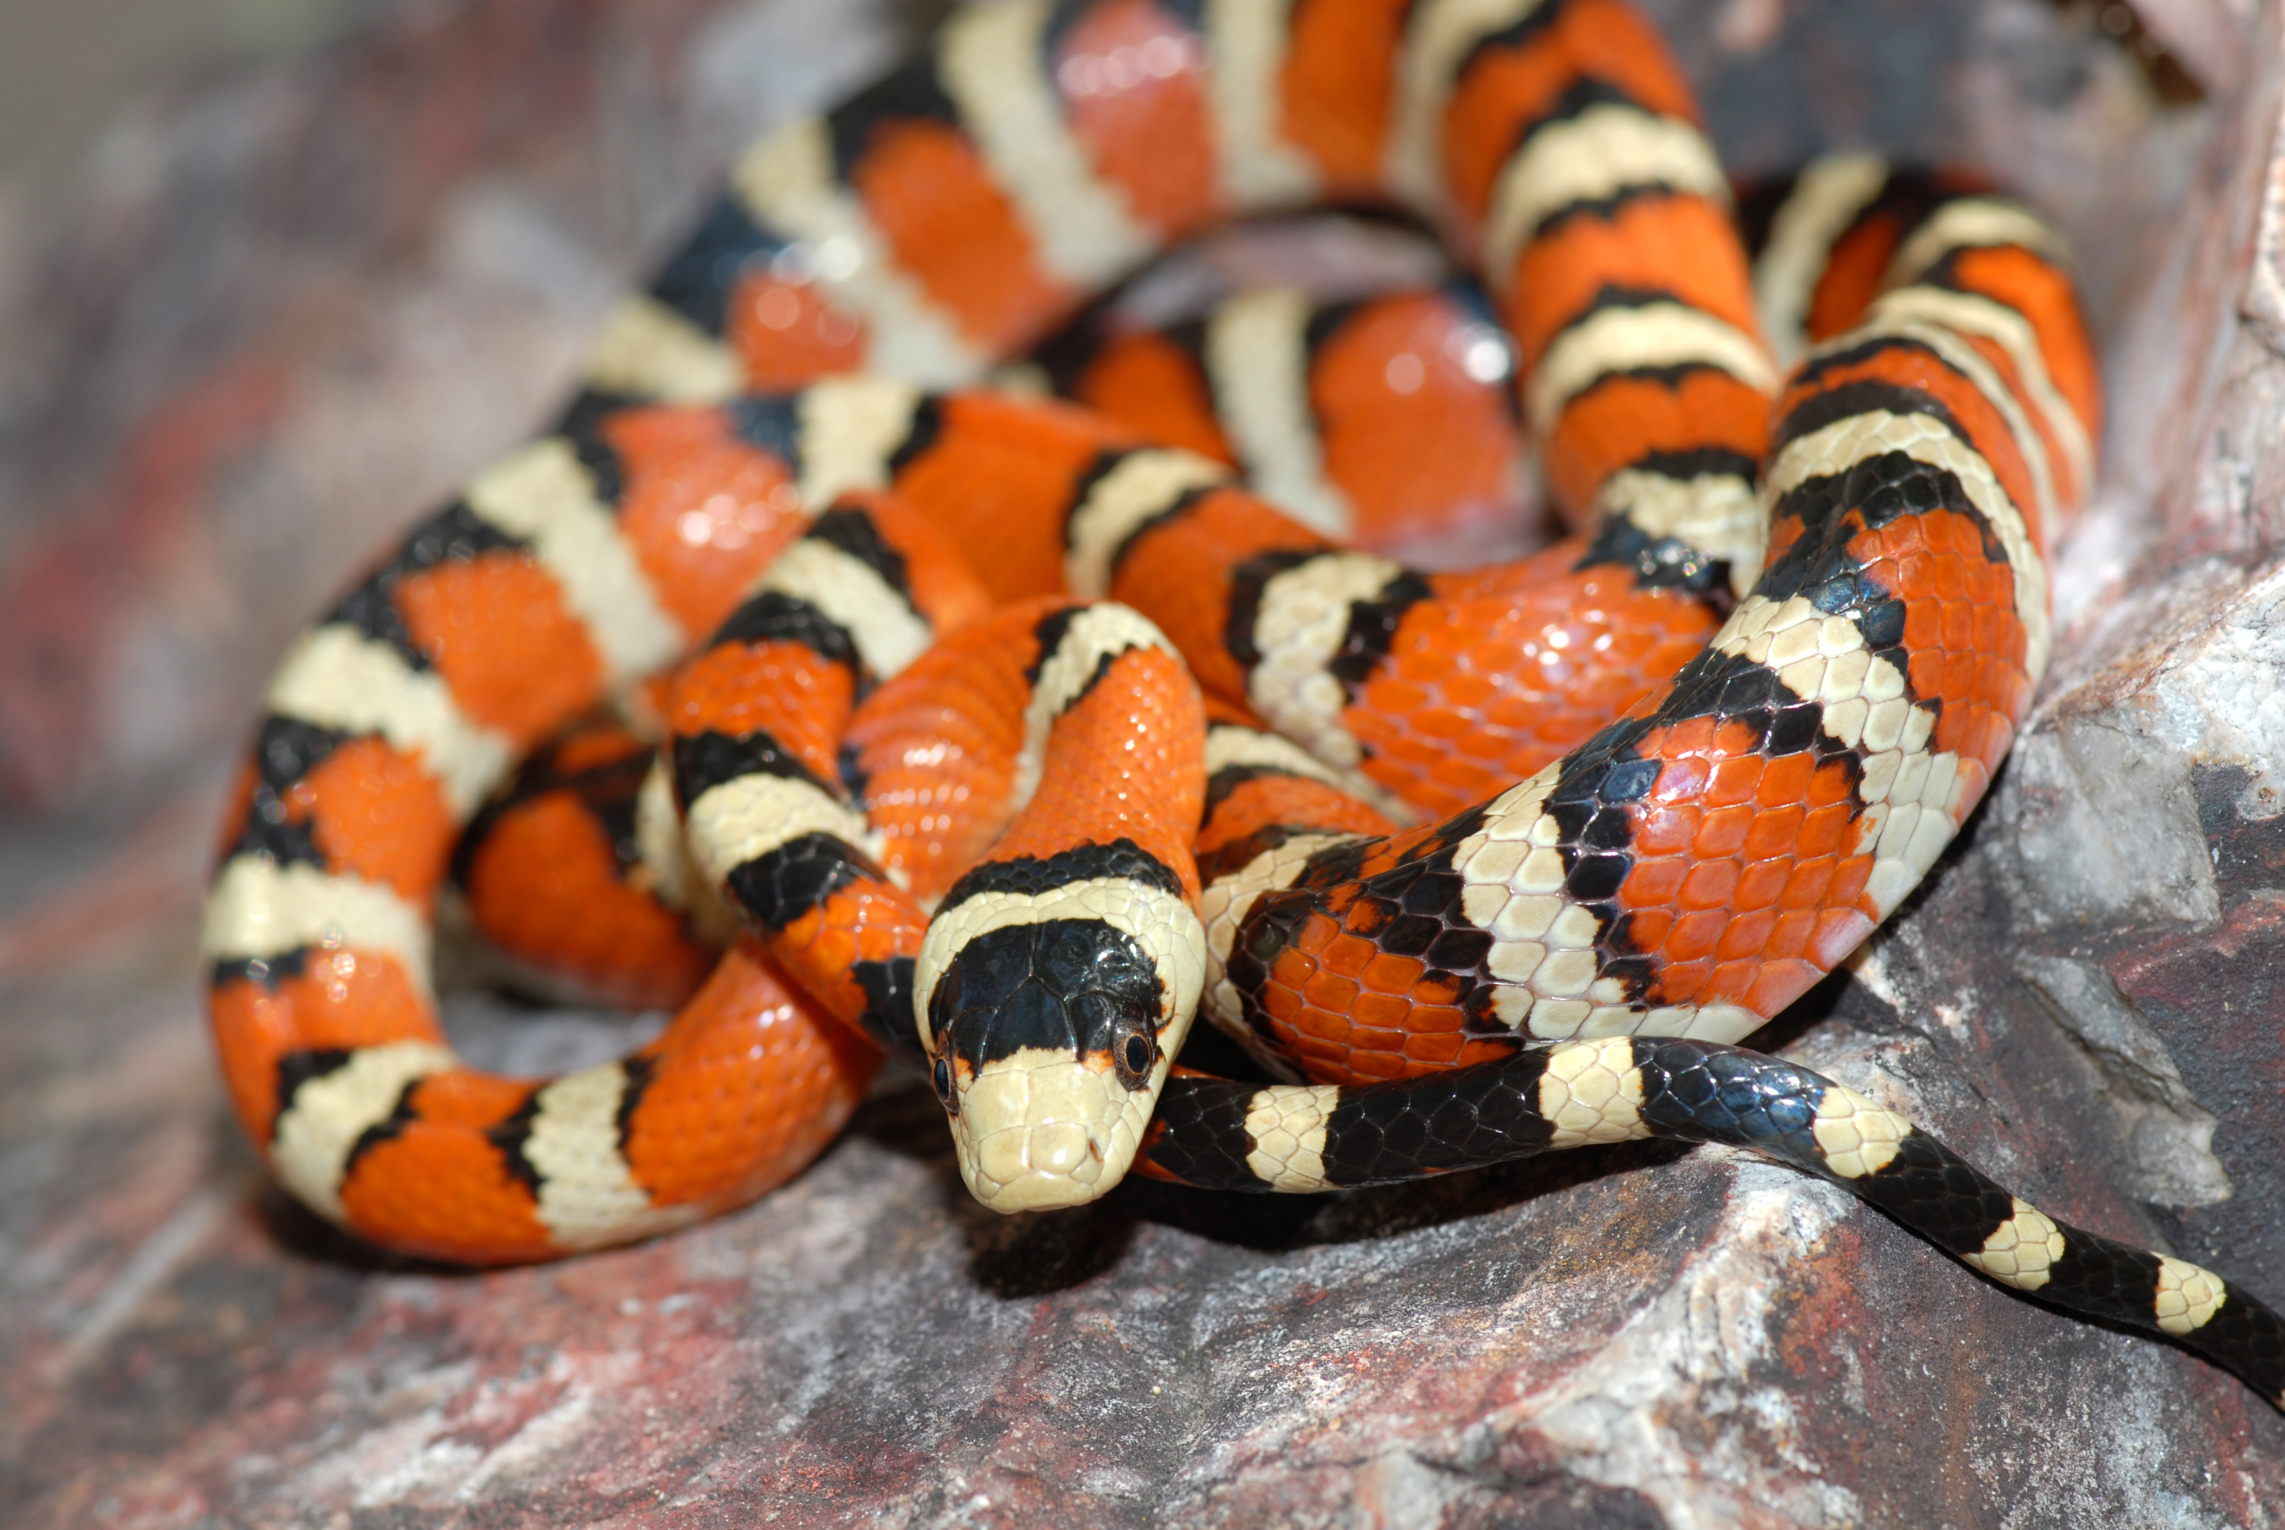 Snakes That Are Brown With Stripes